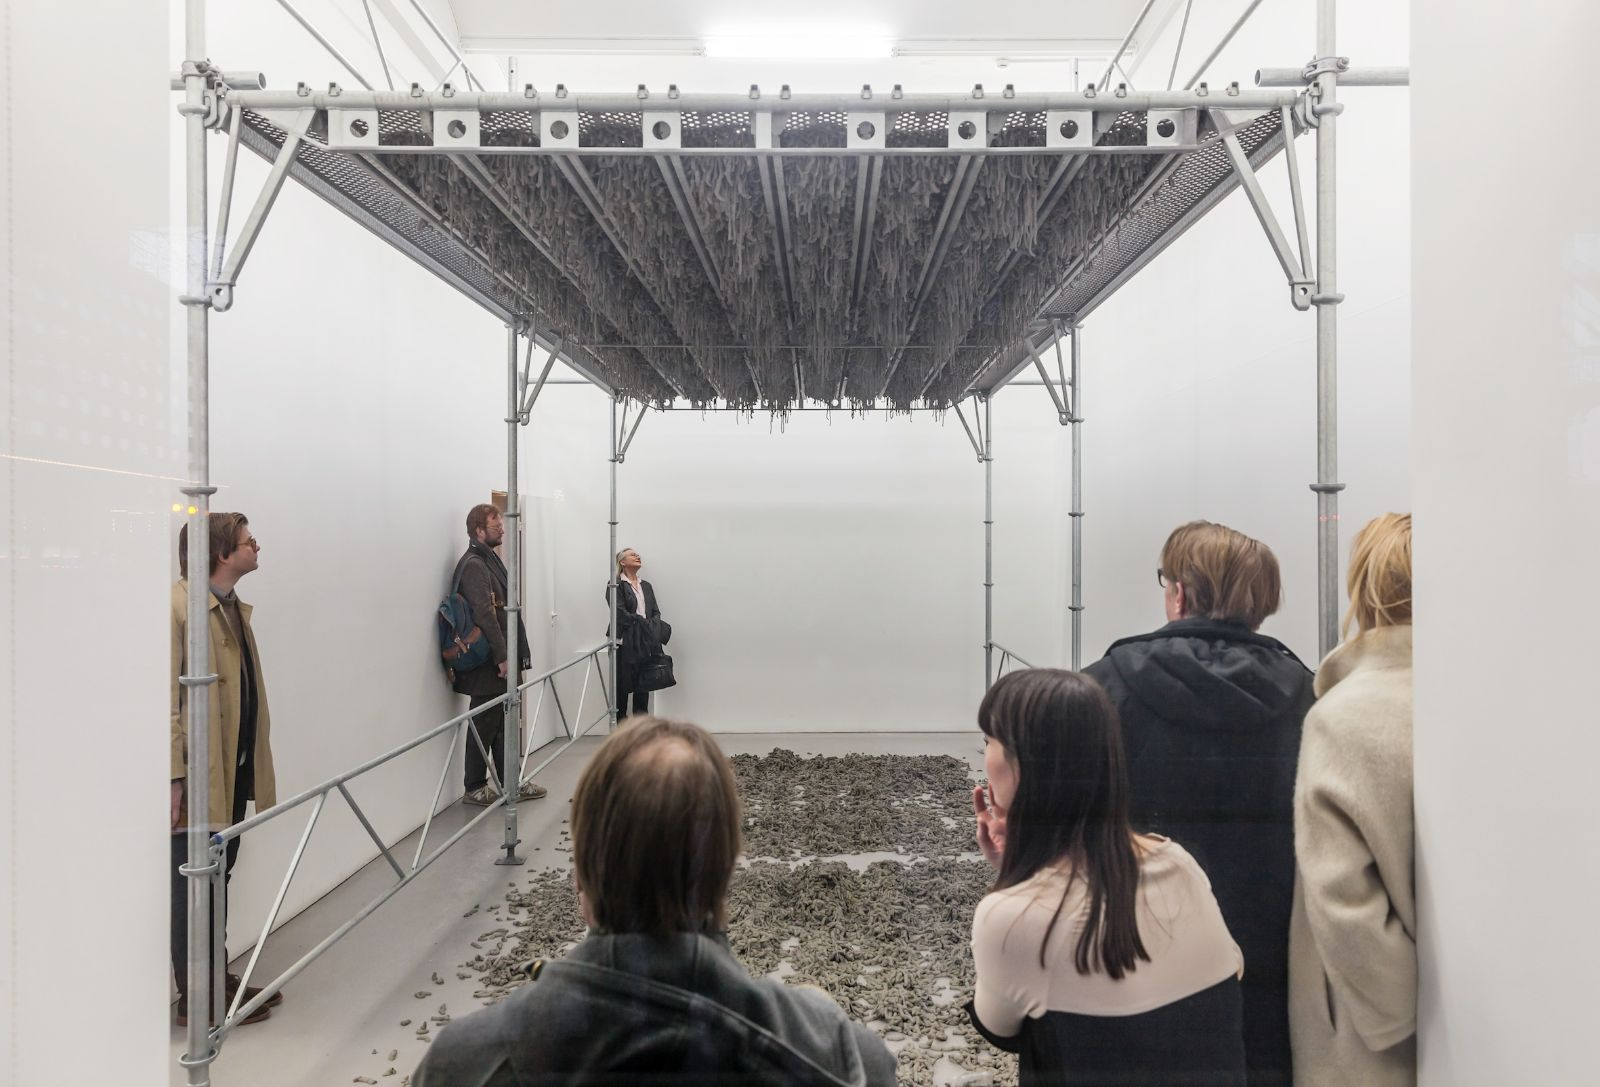 Still Life Production, 2013, scaffolding, steel planks, clay, 3 x 6 x 4 m. During the performance in Galleri Riis, Stockholm, 2013, the artist trampled three tons of clay through the holes of the platform.